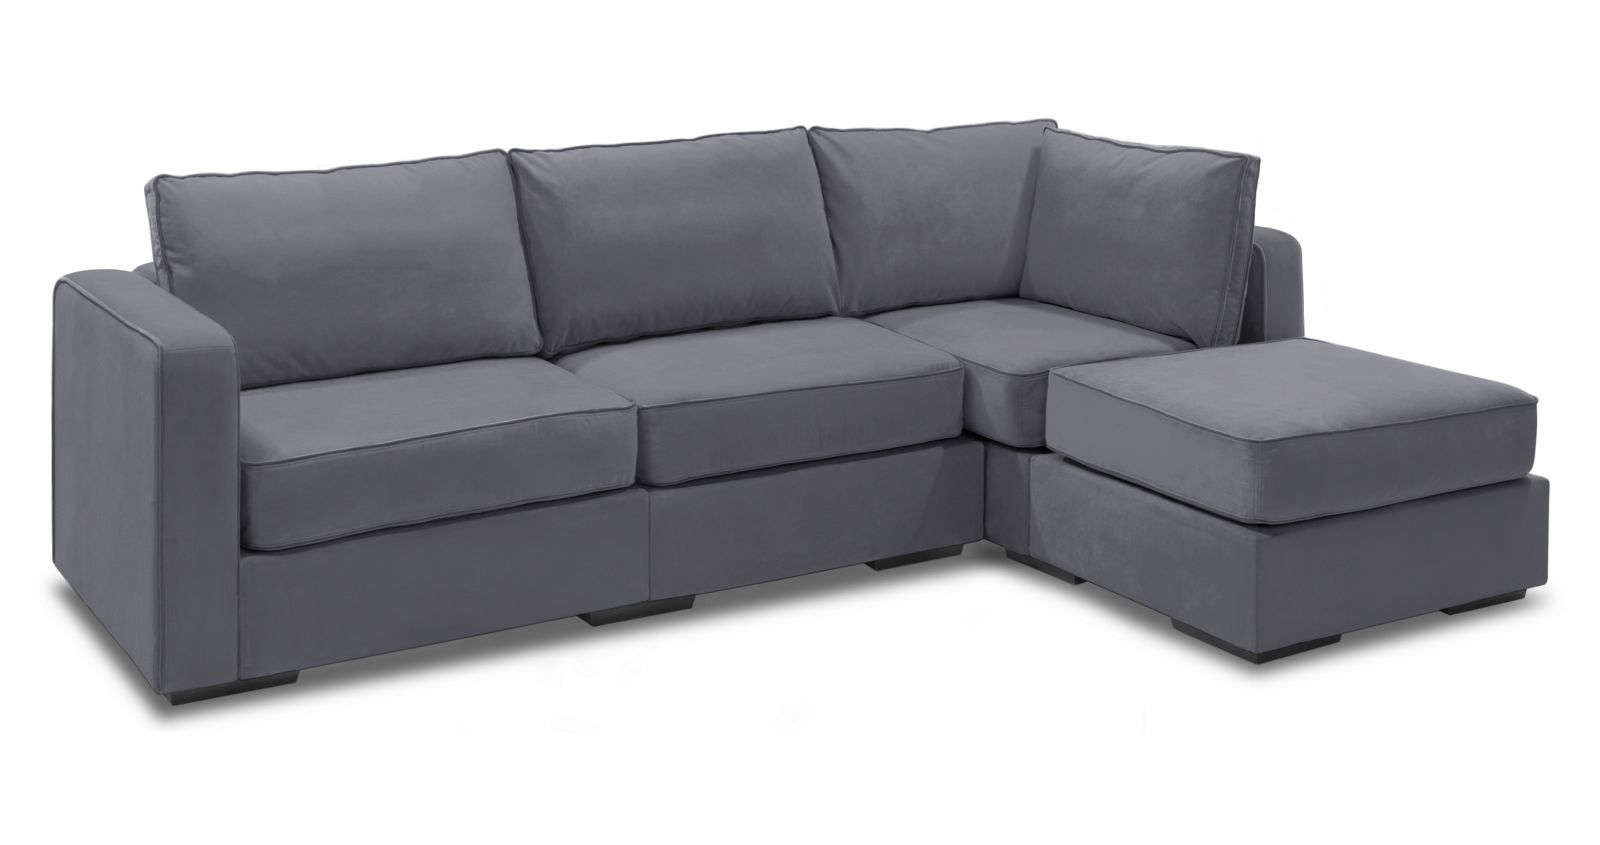 Chaise Sectional Couch Seats Sides Lovesac Main Pdp Locks Dollar Pertaining To Norfolk Grey 6 Piece Sectionals With Raf Chaise (View 16 of 25)